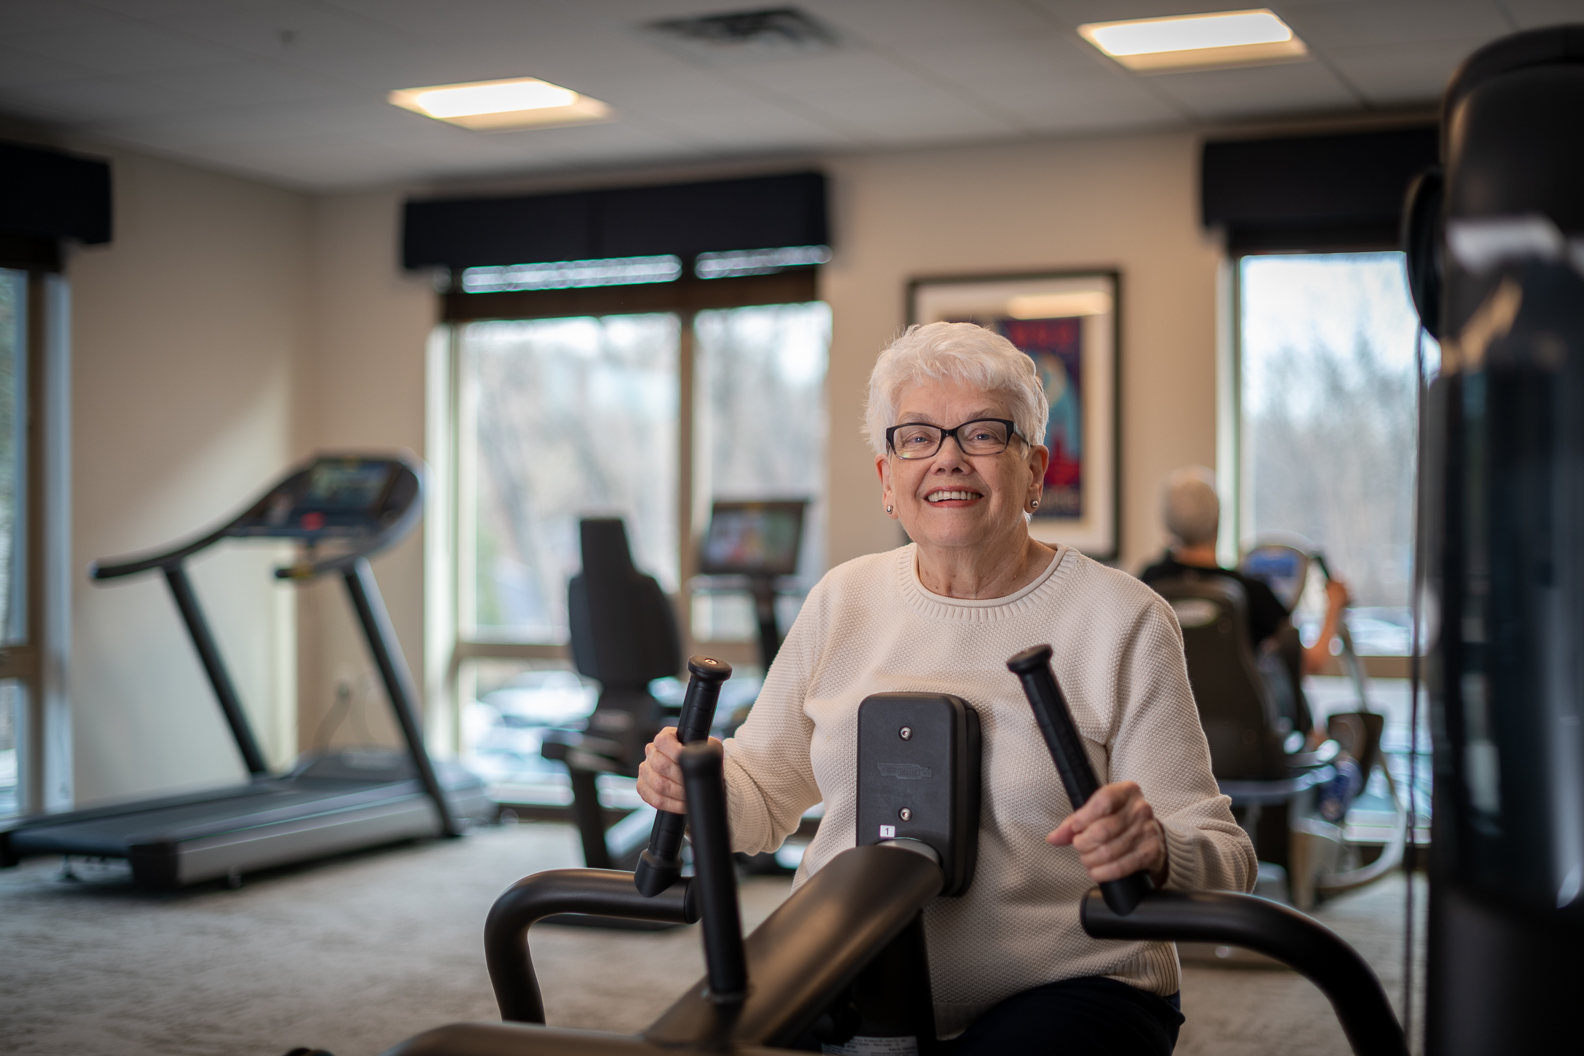 Senior living apartments resident exercise gym room activity community golden valley mn